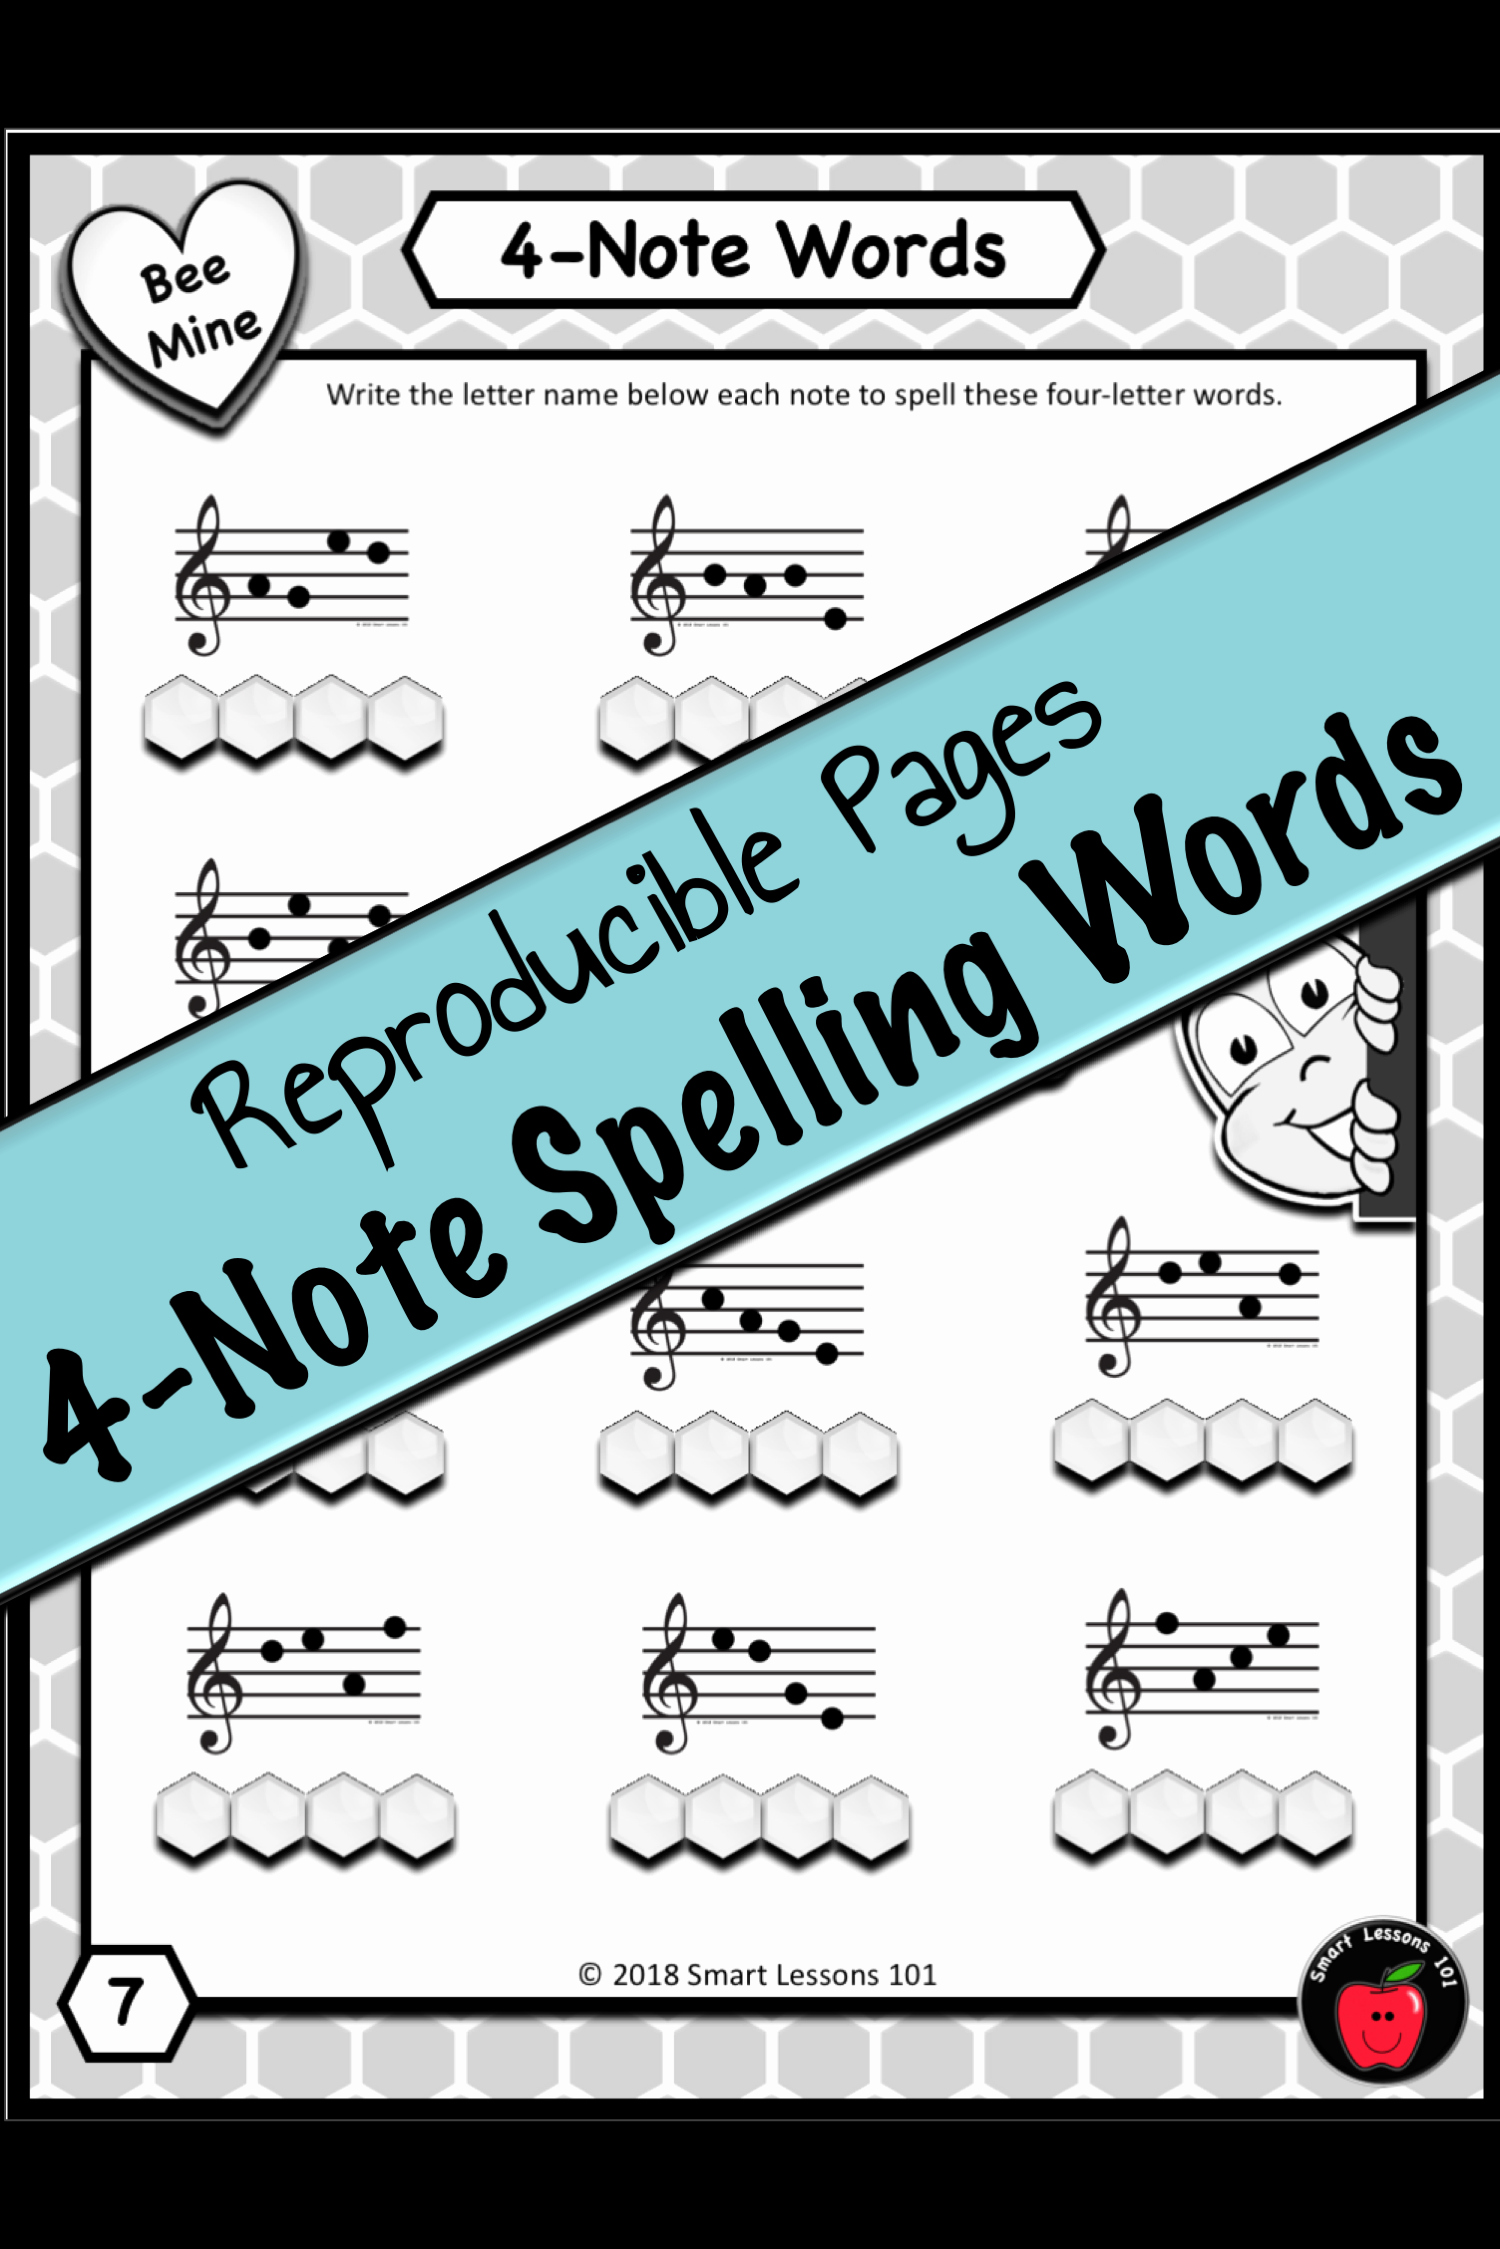 Note Speller Worksheets Beautiful Valentines Day Music Bundle Note Name Music Worksheets